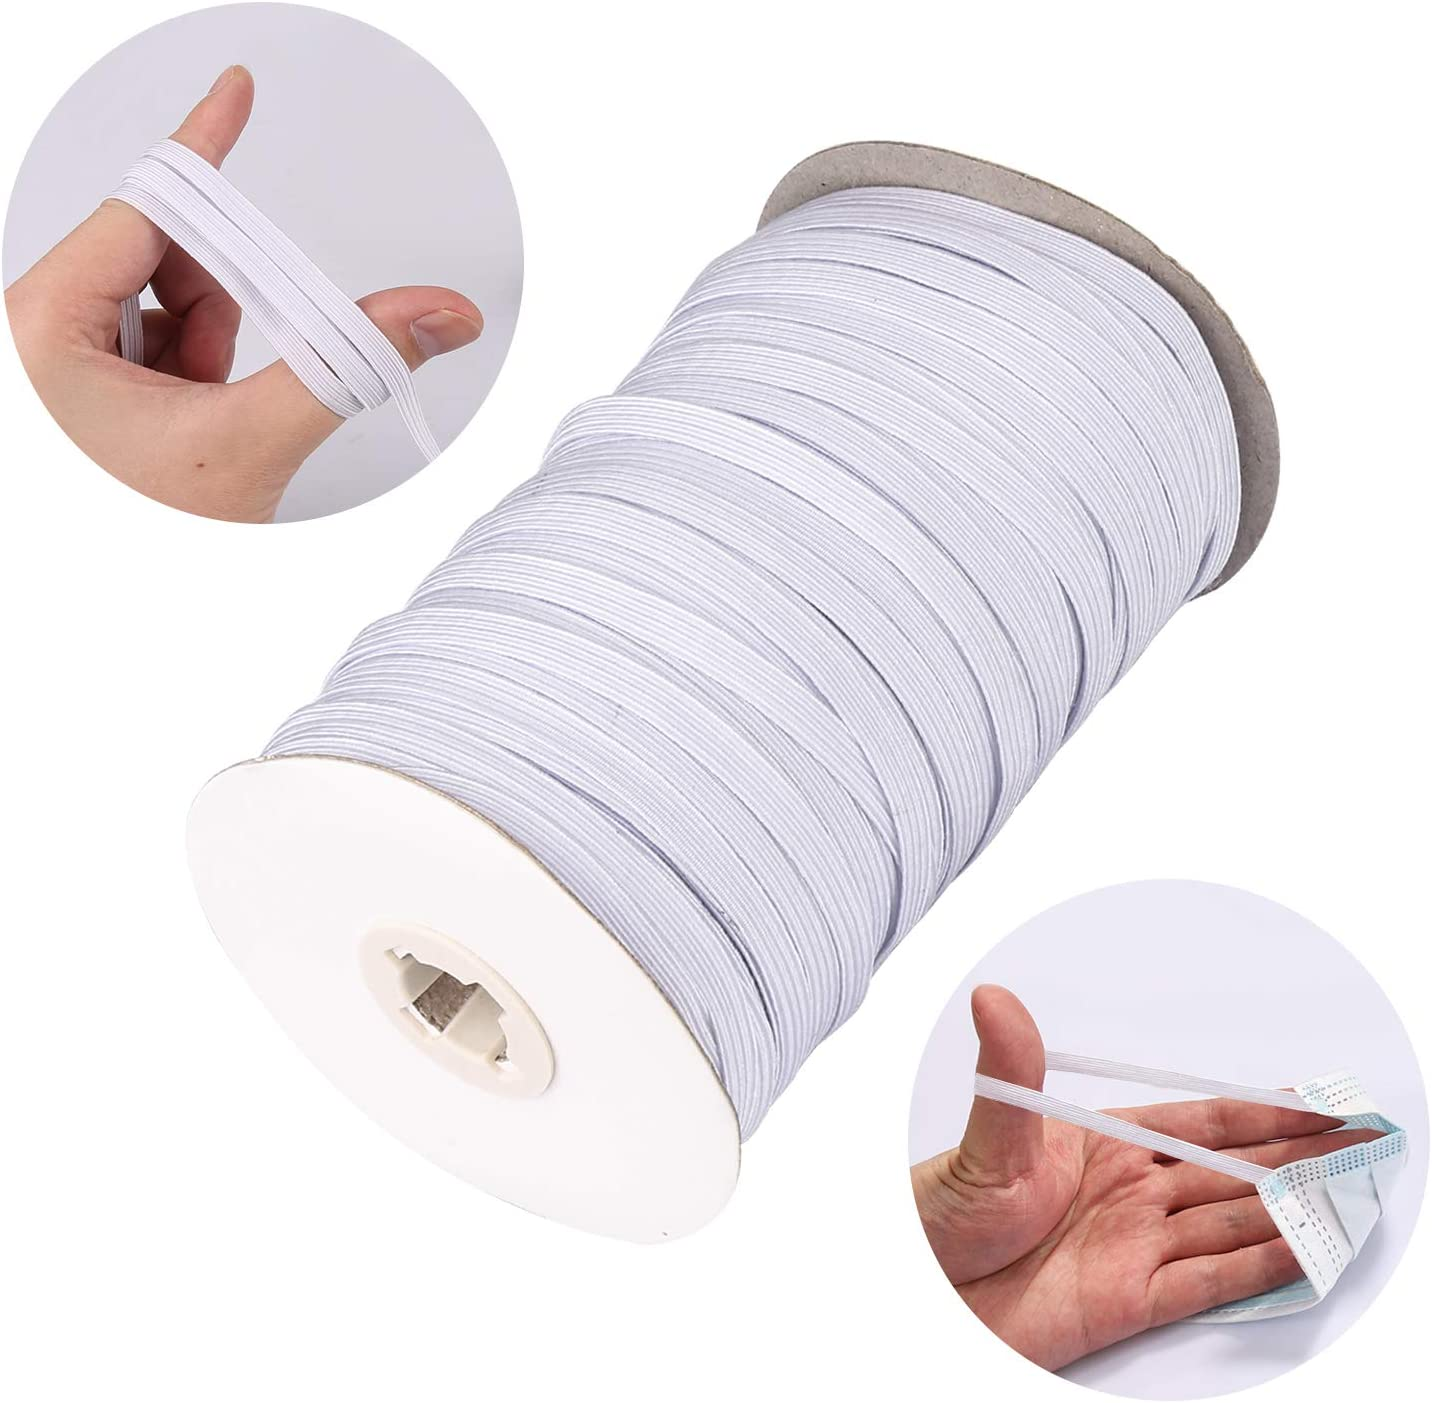 with Scissor and Tape Measure Elastic Cord//Elastic Band//Elastic Rope//Bungee,140 Yard 1//4 Inch Braided Heavy Stretch High Elasticity Knit Elastic Band for Sewing Crafts DIY,Mask Making,Cuff